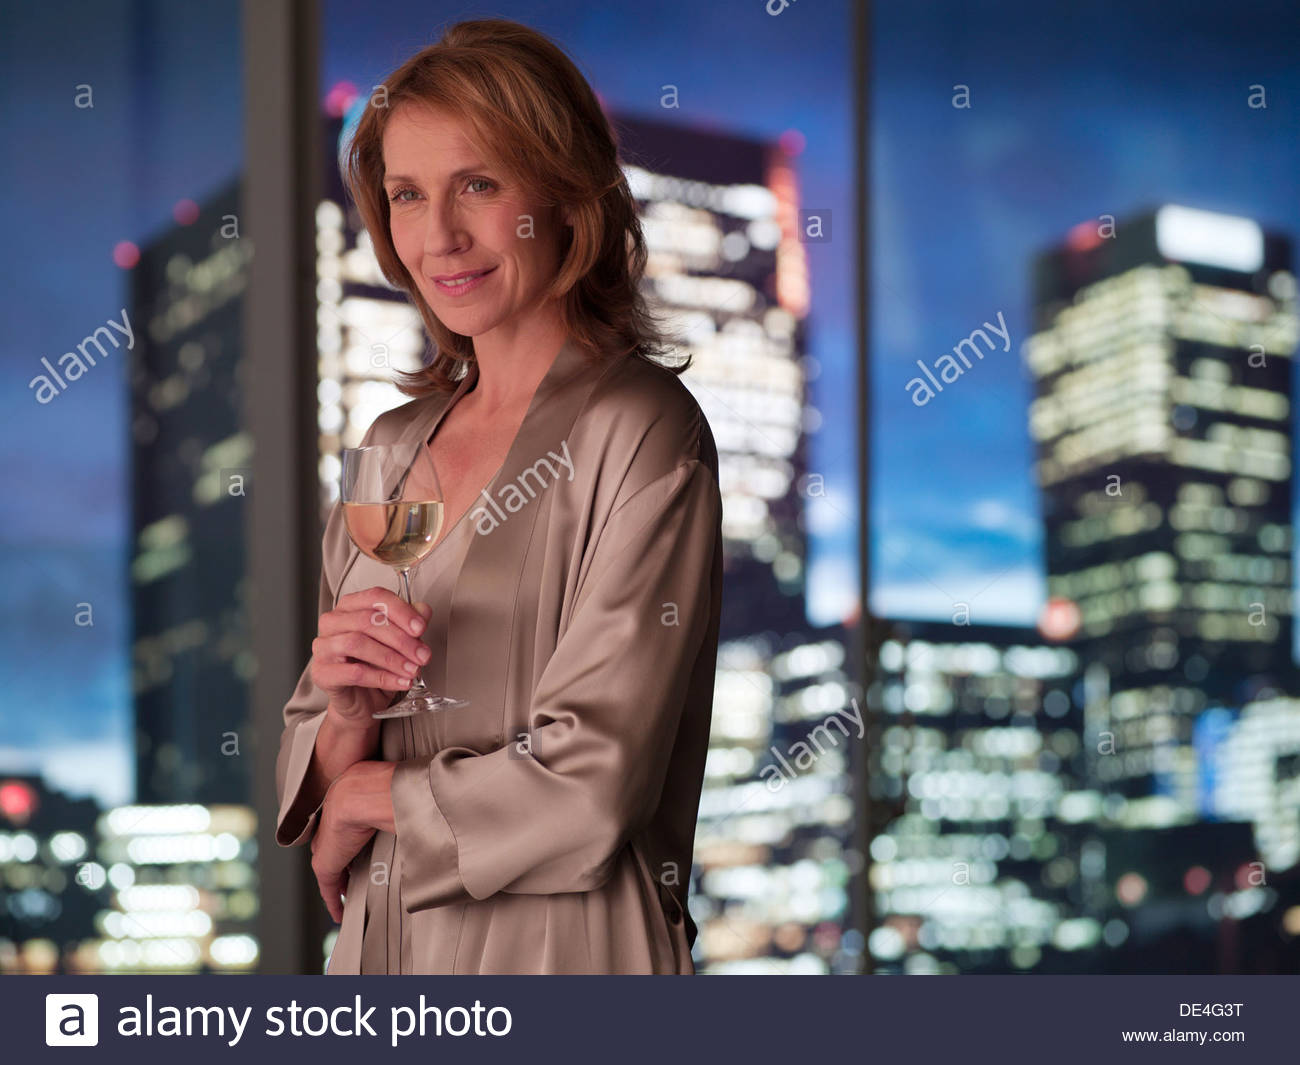 Woman in nightgown drinking white wine at night - Stock Image